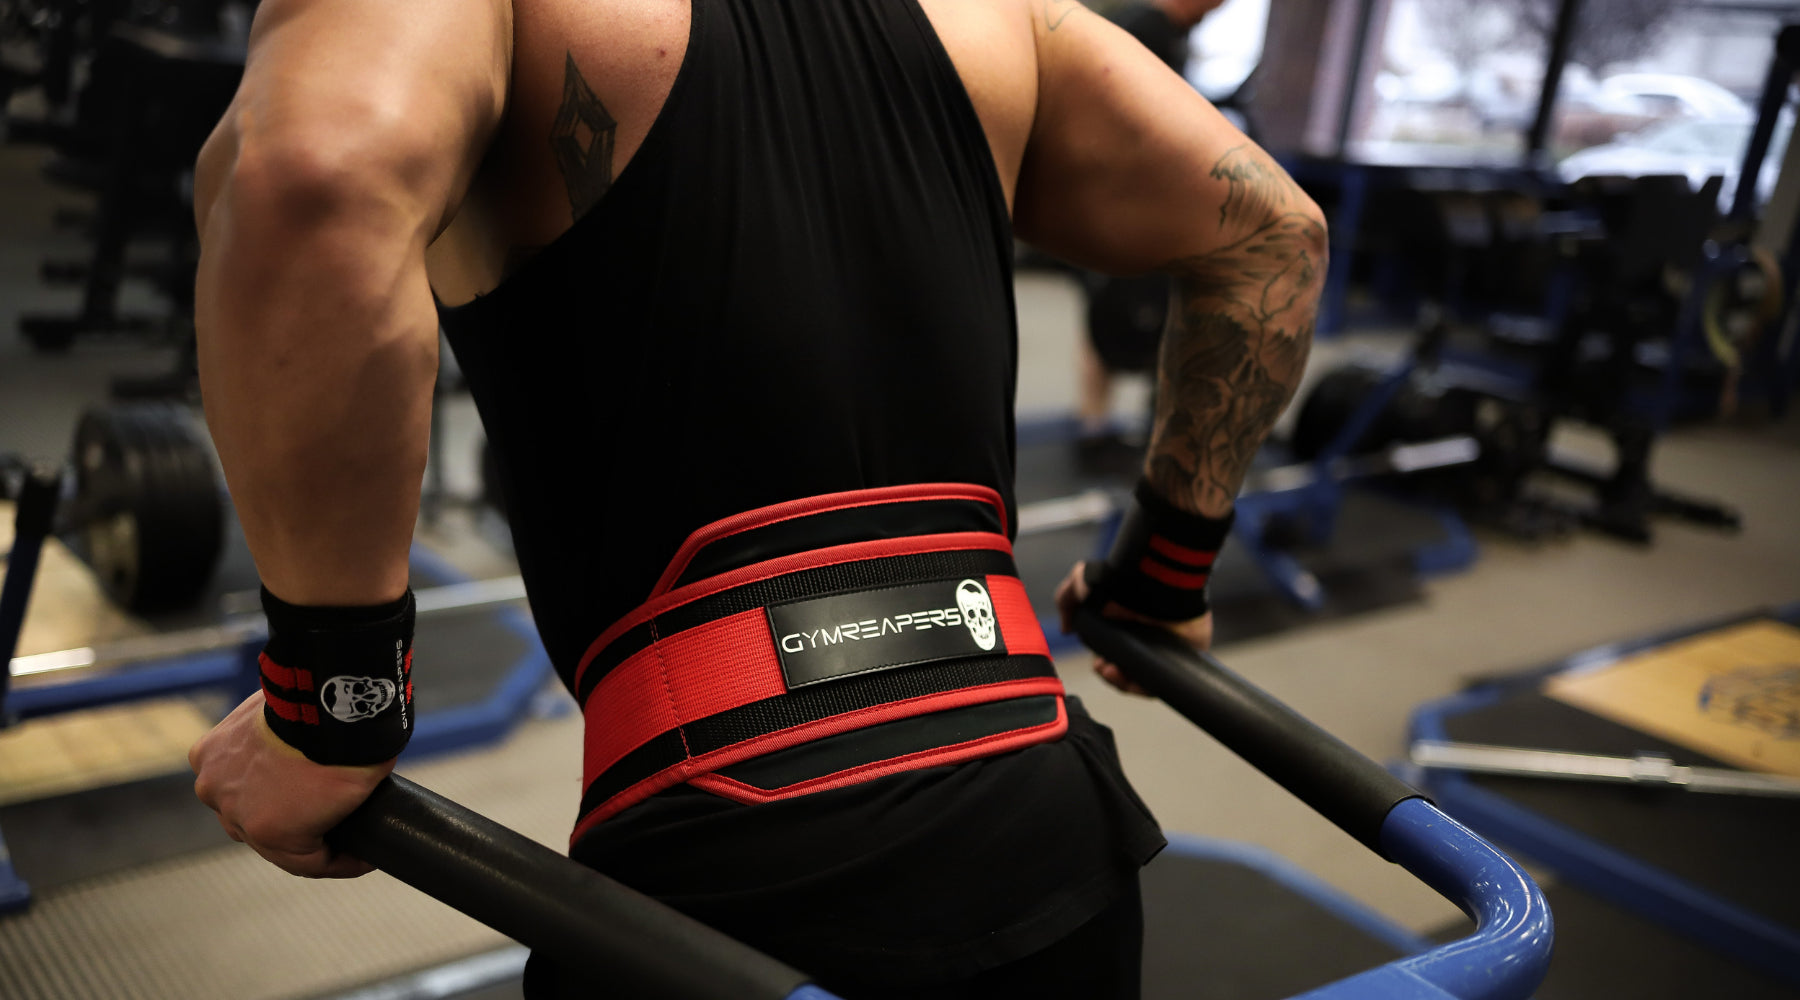 Dipping Belt Weightlifting Dip with Steel Chain BodyExercise Gym Training Straps